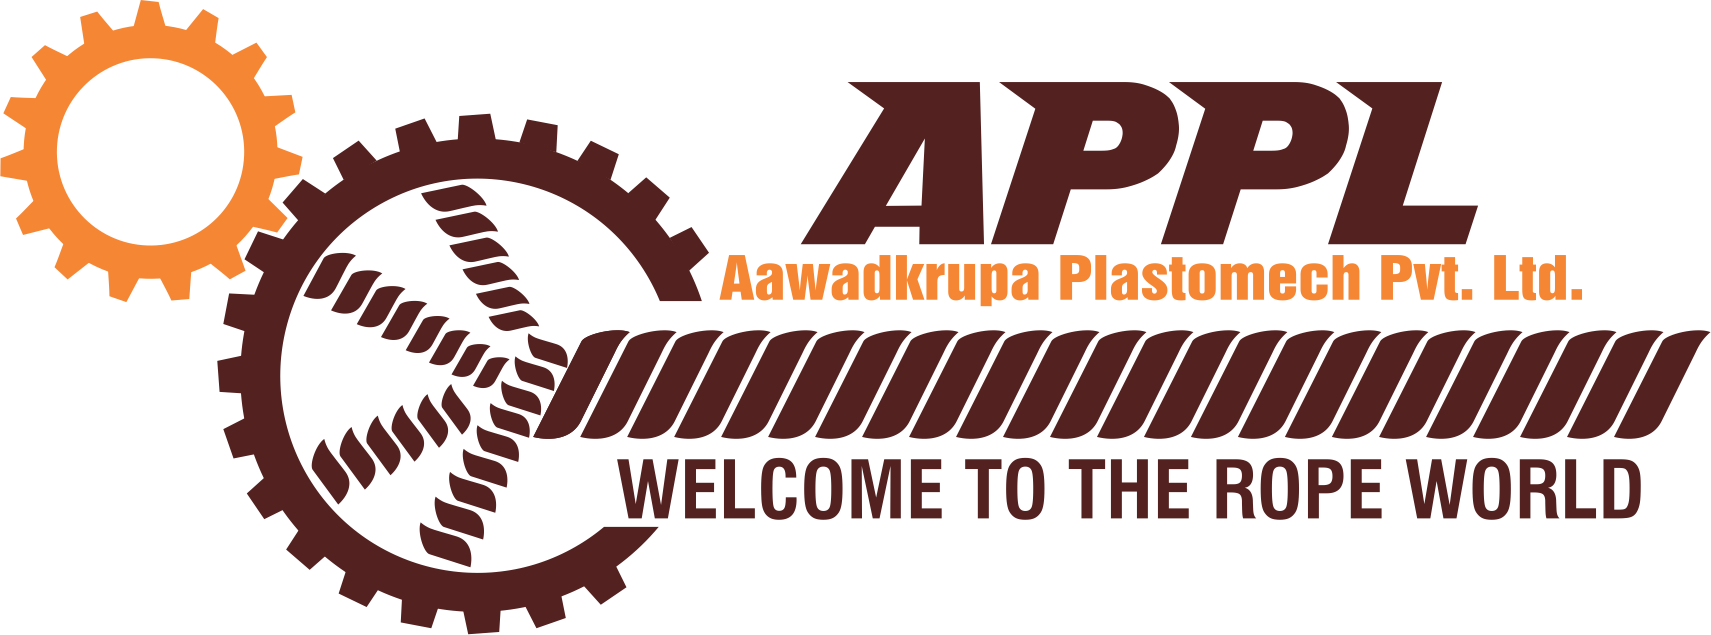 Aawadkrupa Plastomech Pvt. Ltd.